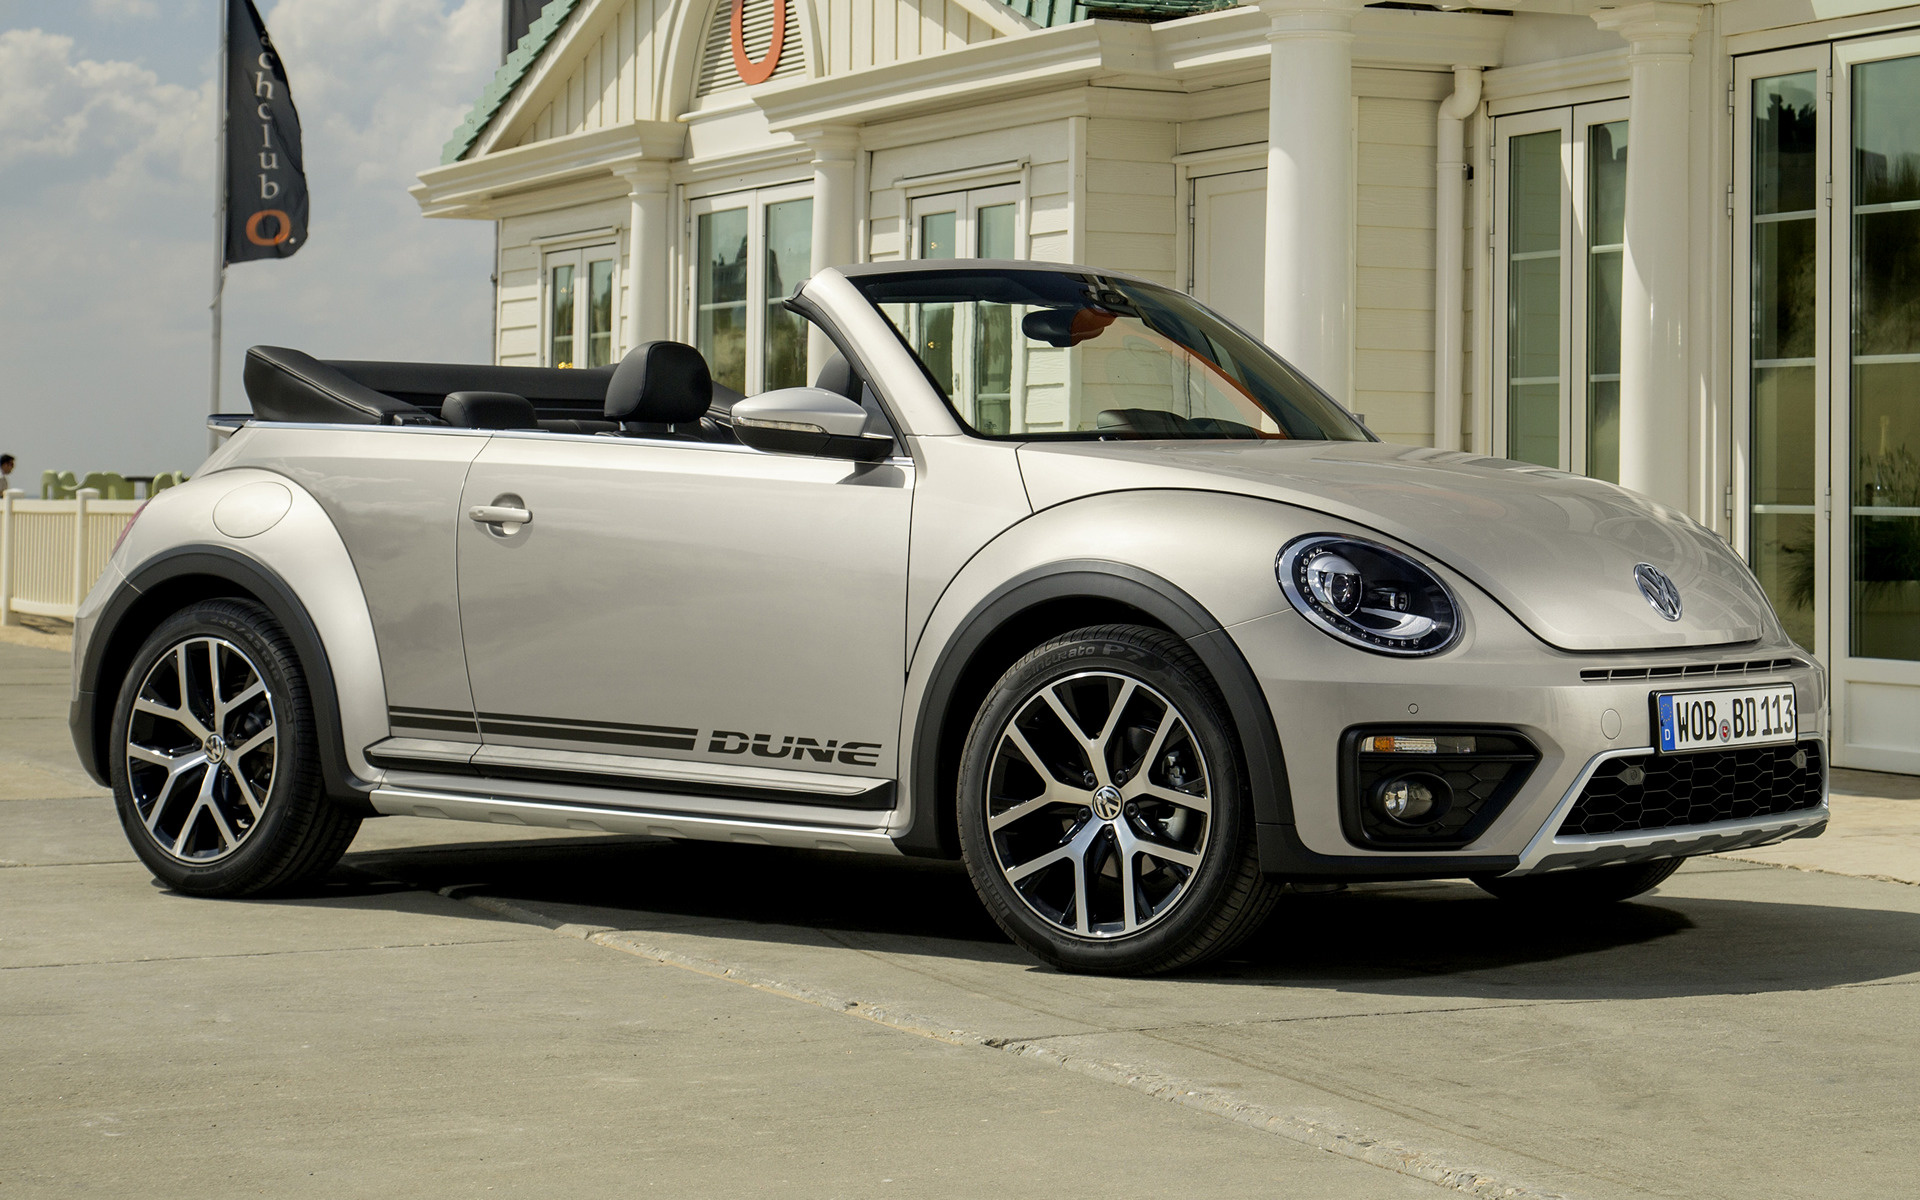 Audi White Car Wallpapers 2016 Volkswagen Beetle Dune Cabriolet Wallpapers And Hd